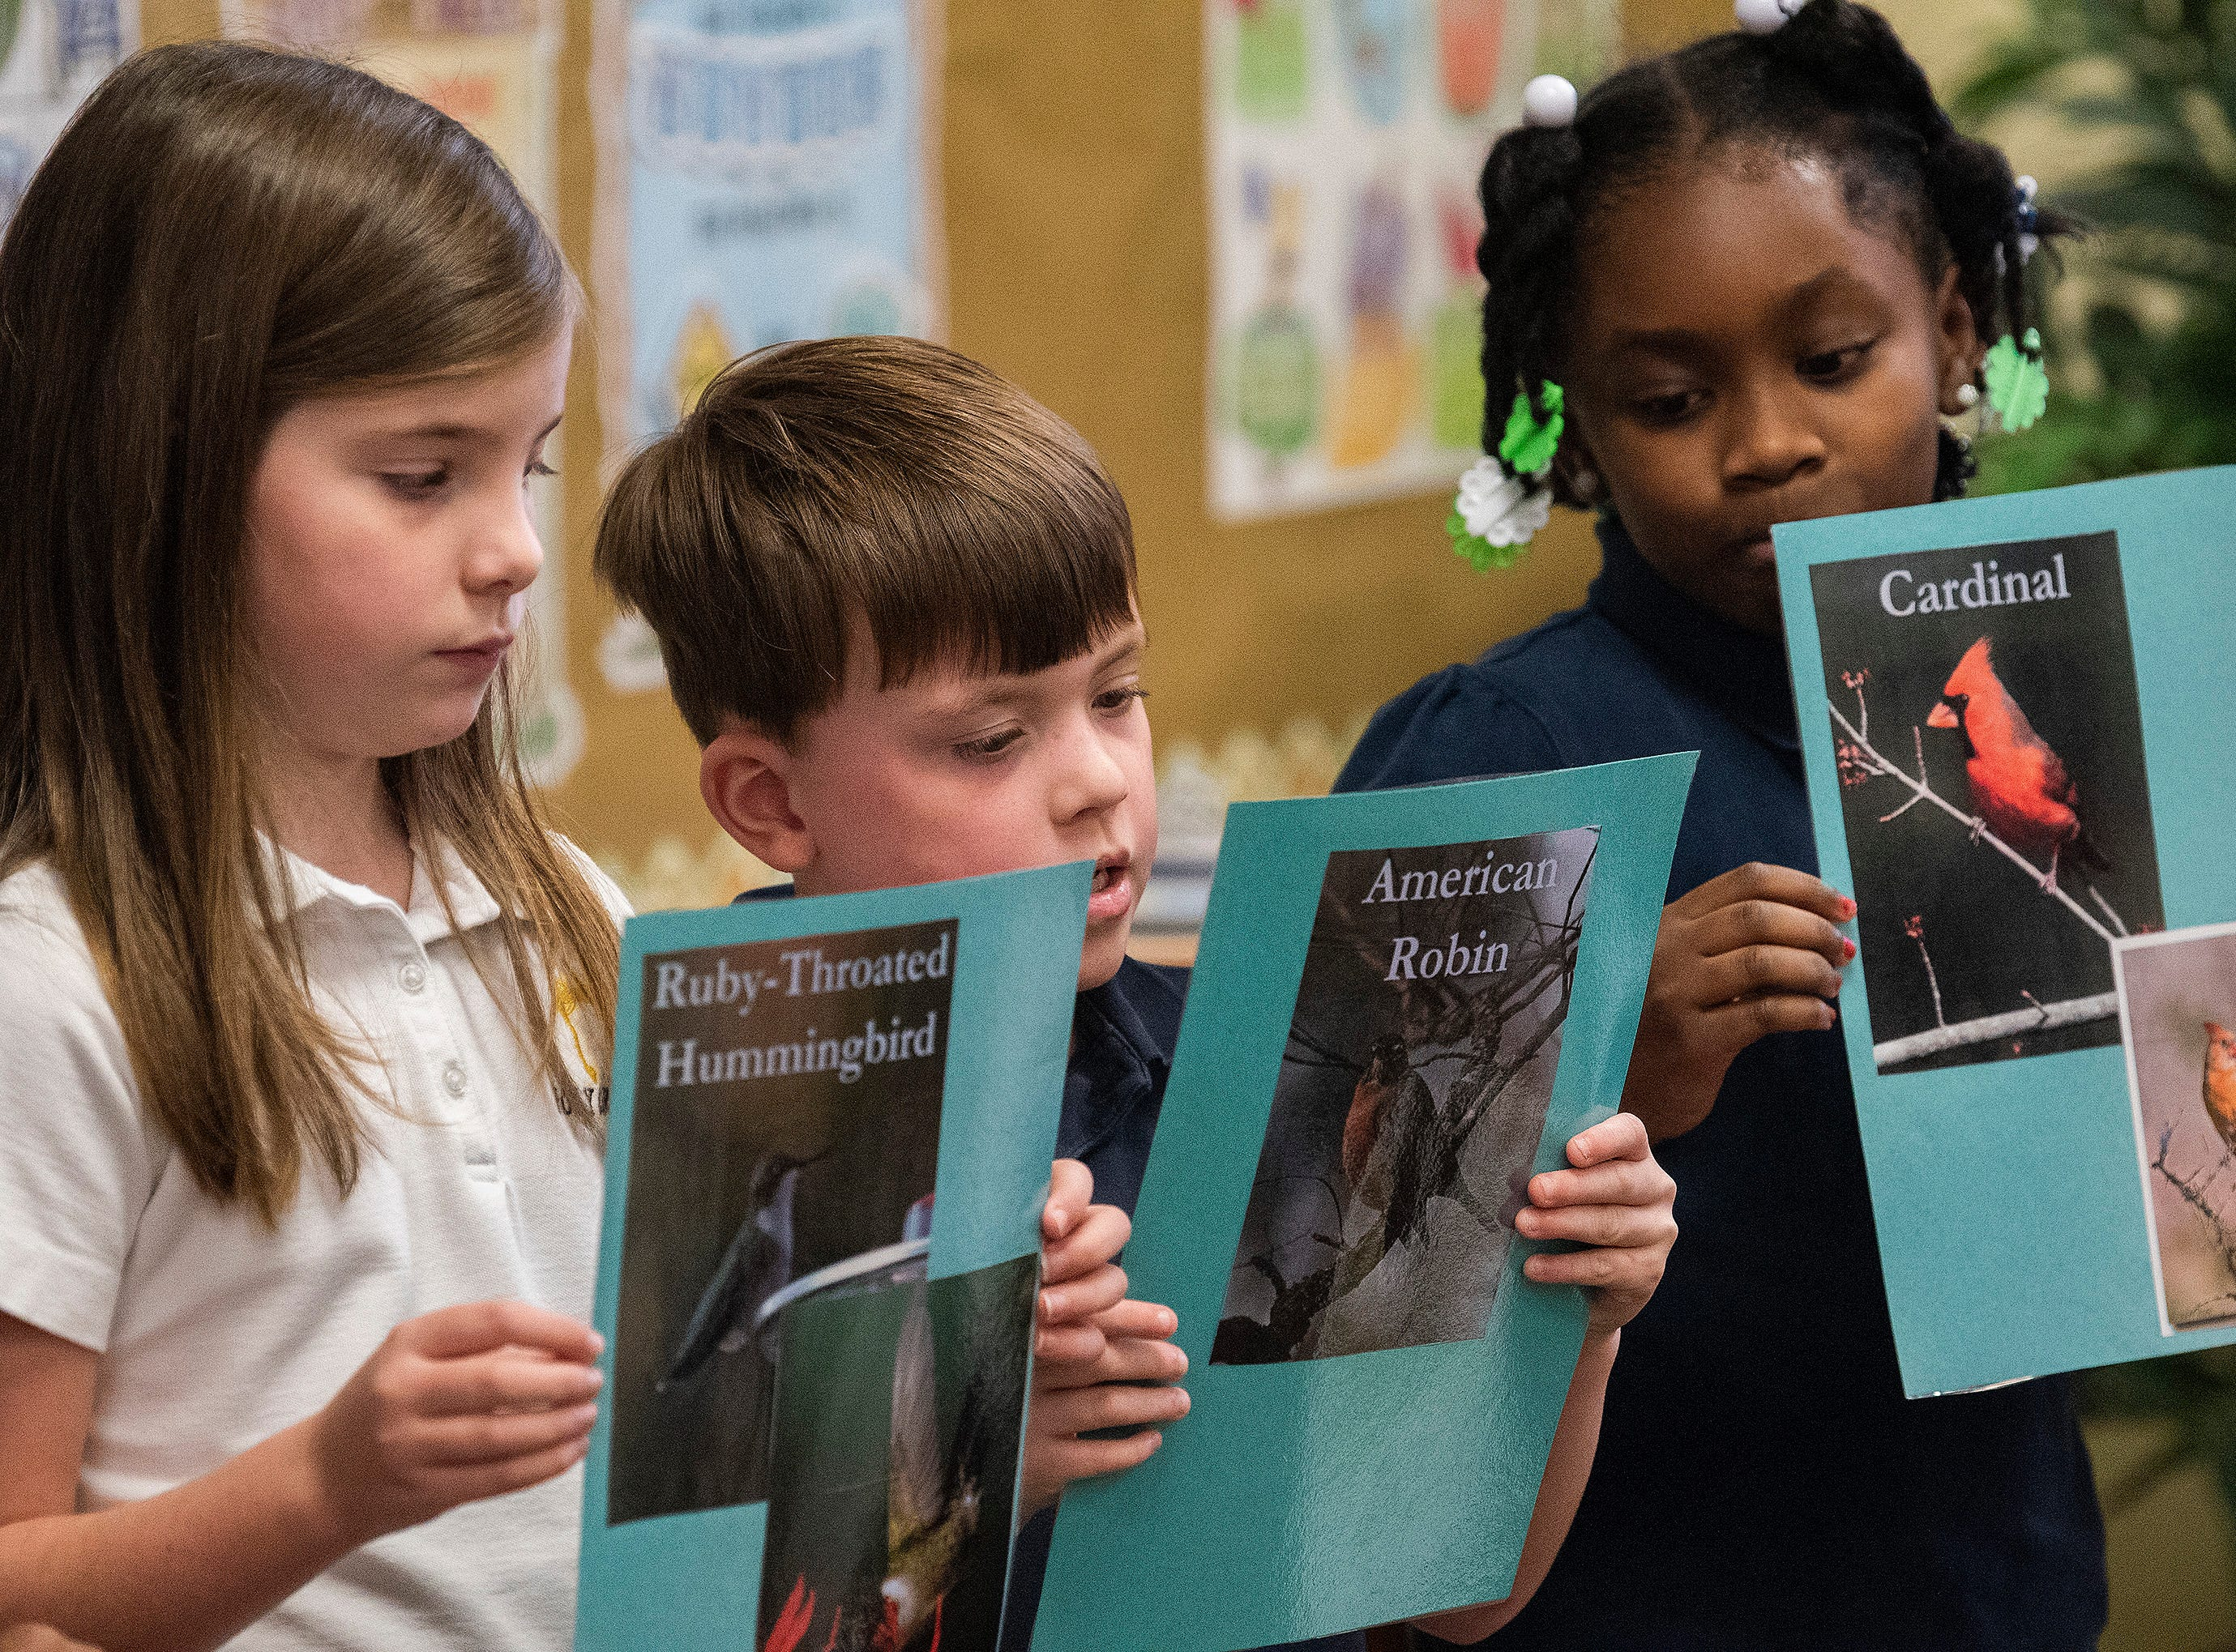 Students give presentations on Alabama birds while celebrating the Alabama Bicentennial at Holy Cross Episcopal School in Montgomery, Ala., on Friday February 15, 2019.